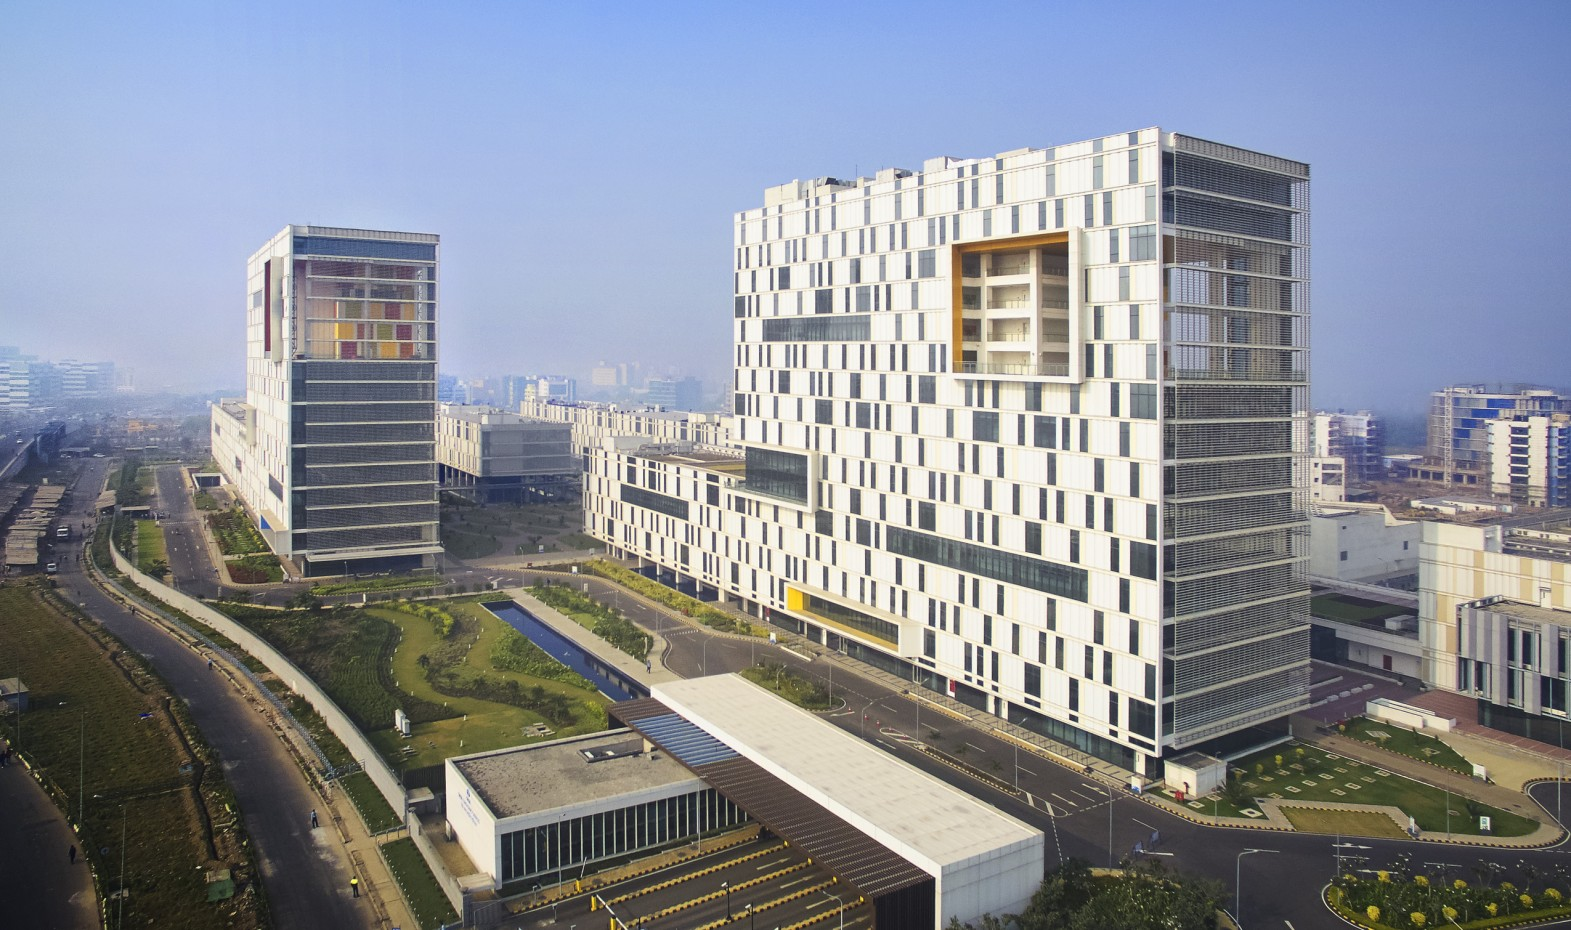 Tata Consultancy Services, Software Development Campus